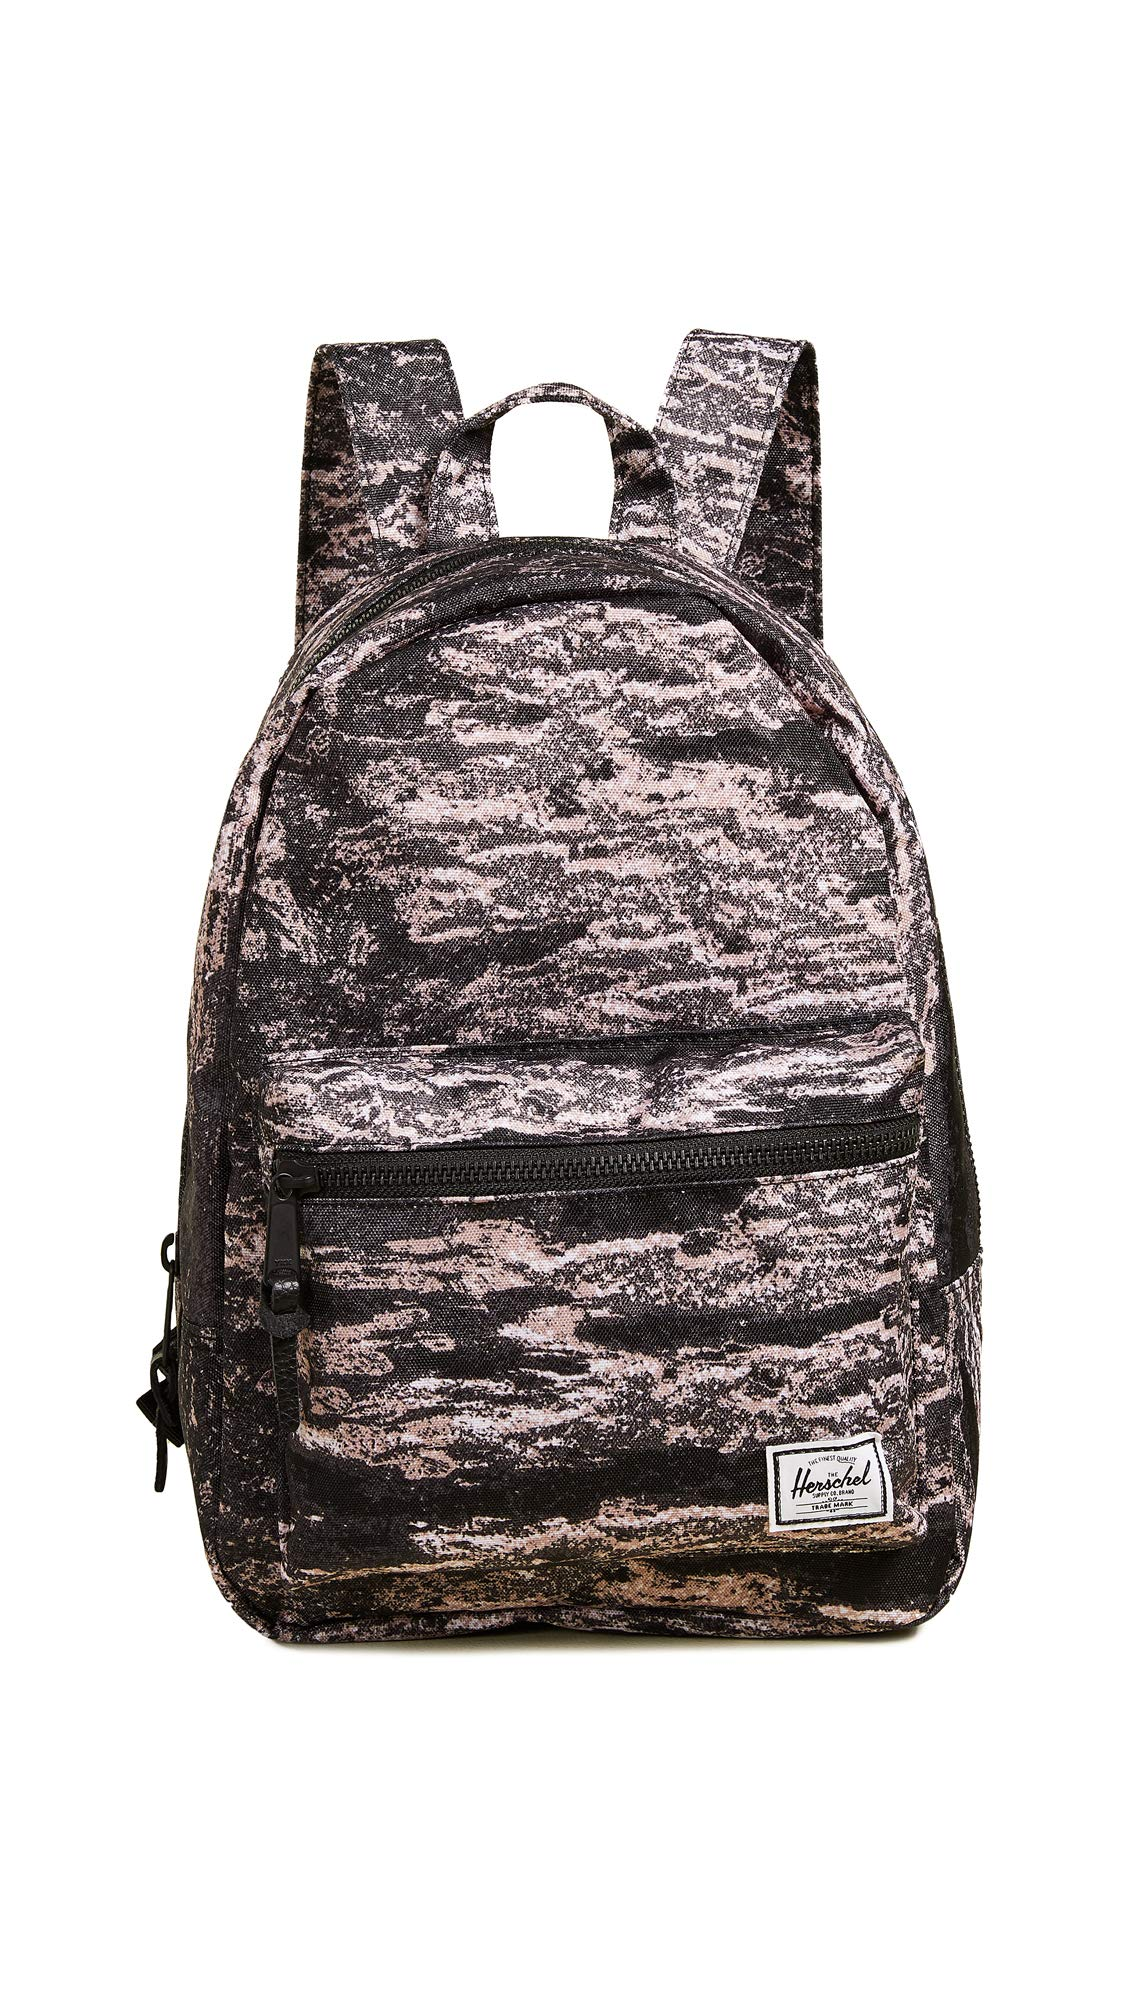 Herschel Supply Co. Grove X-Small Backpack, Ash Rose Desert, One Size by Herschel Supply Co. (Image #1)